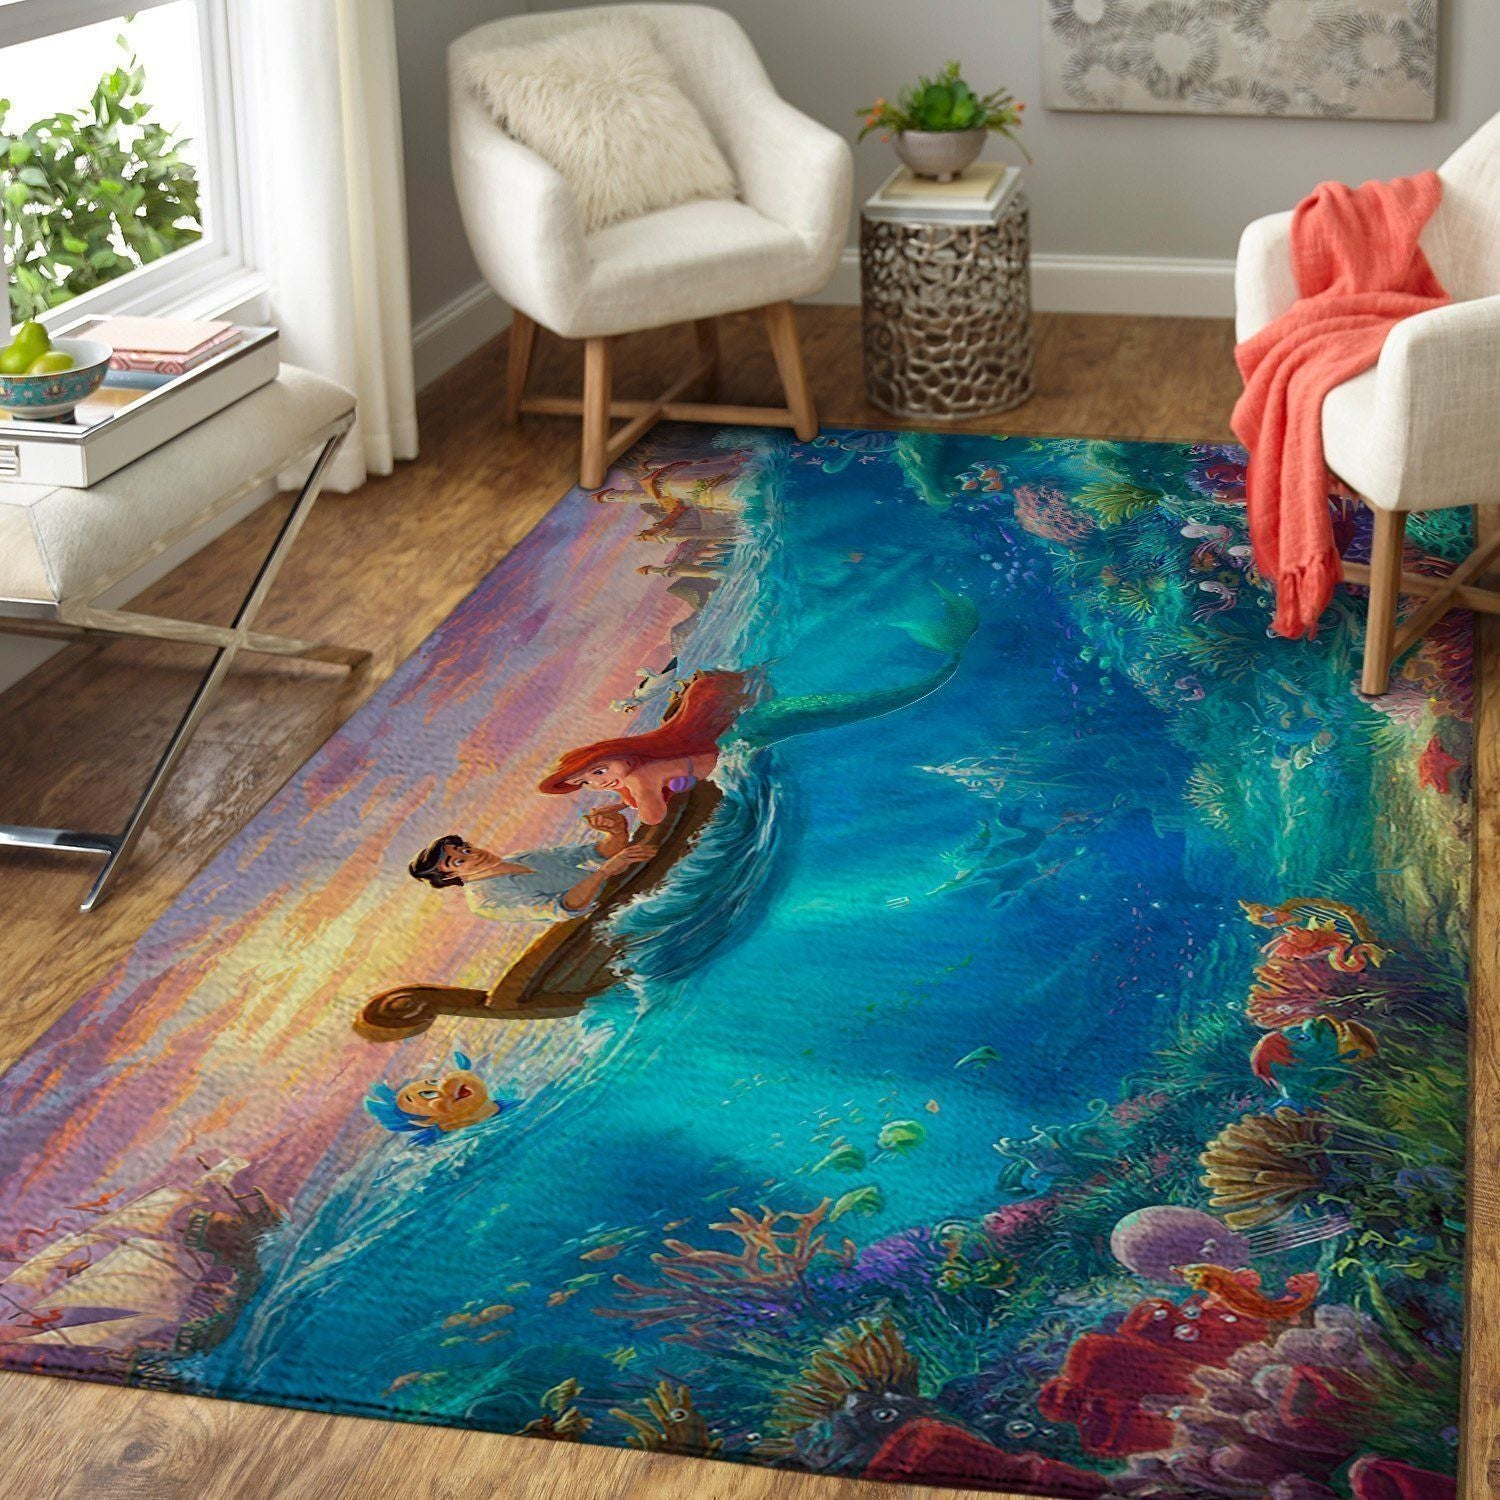 Little Mermaid Area Rugs / Disney Rugs Living Room Carpet, Custom Floor Decor